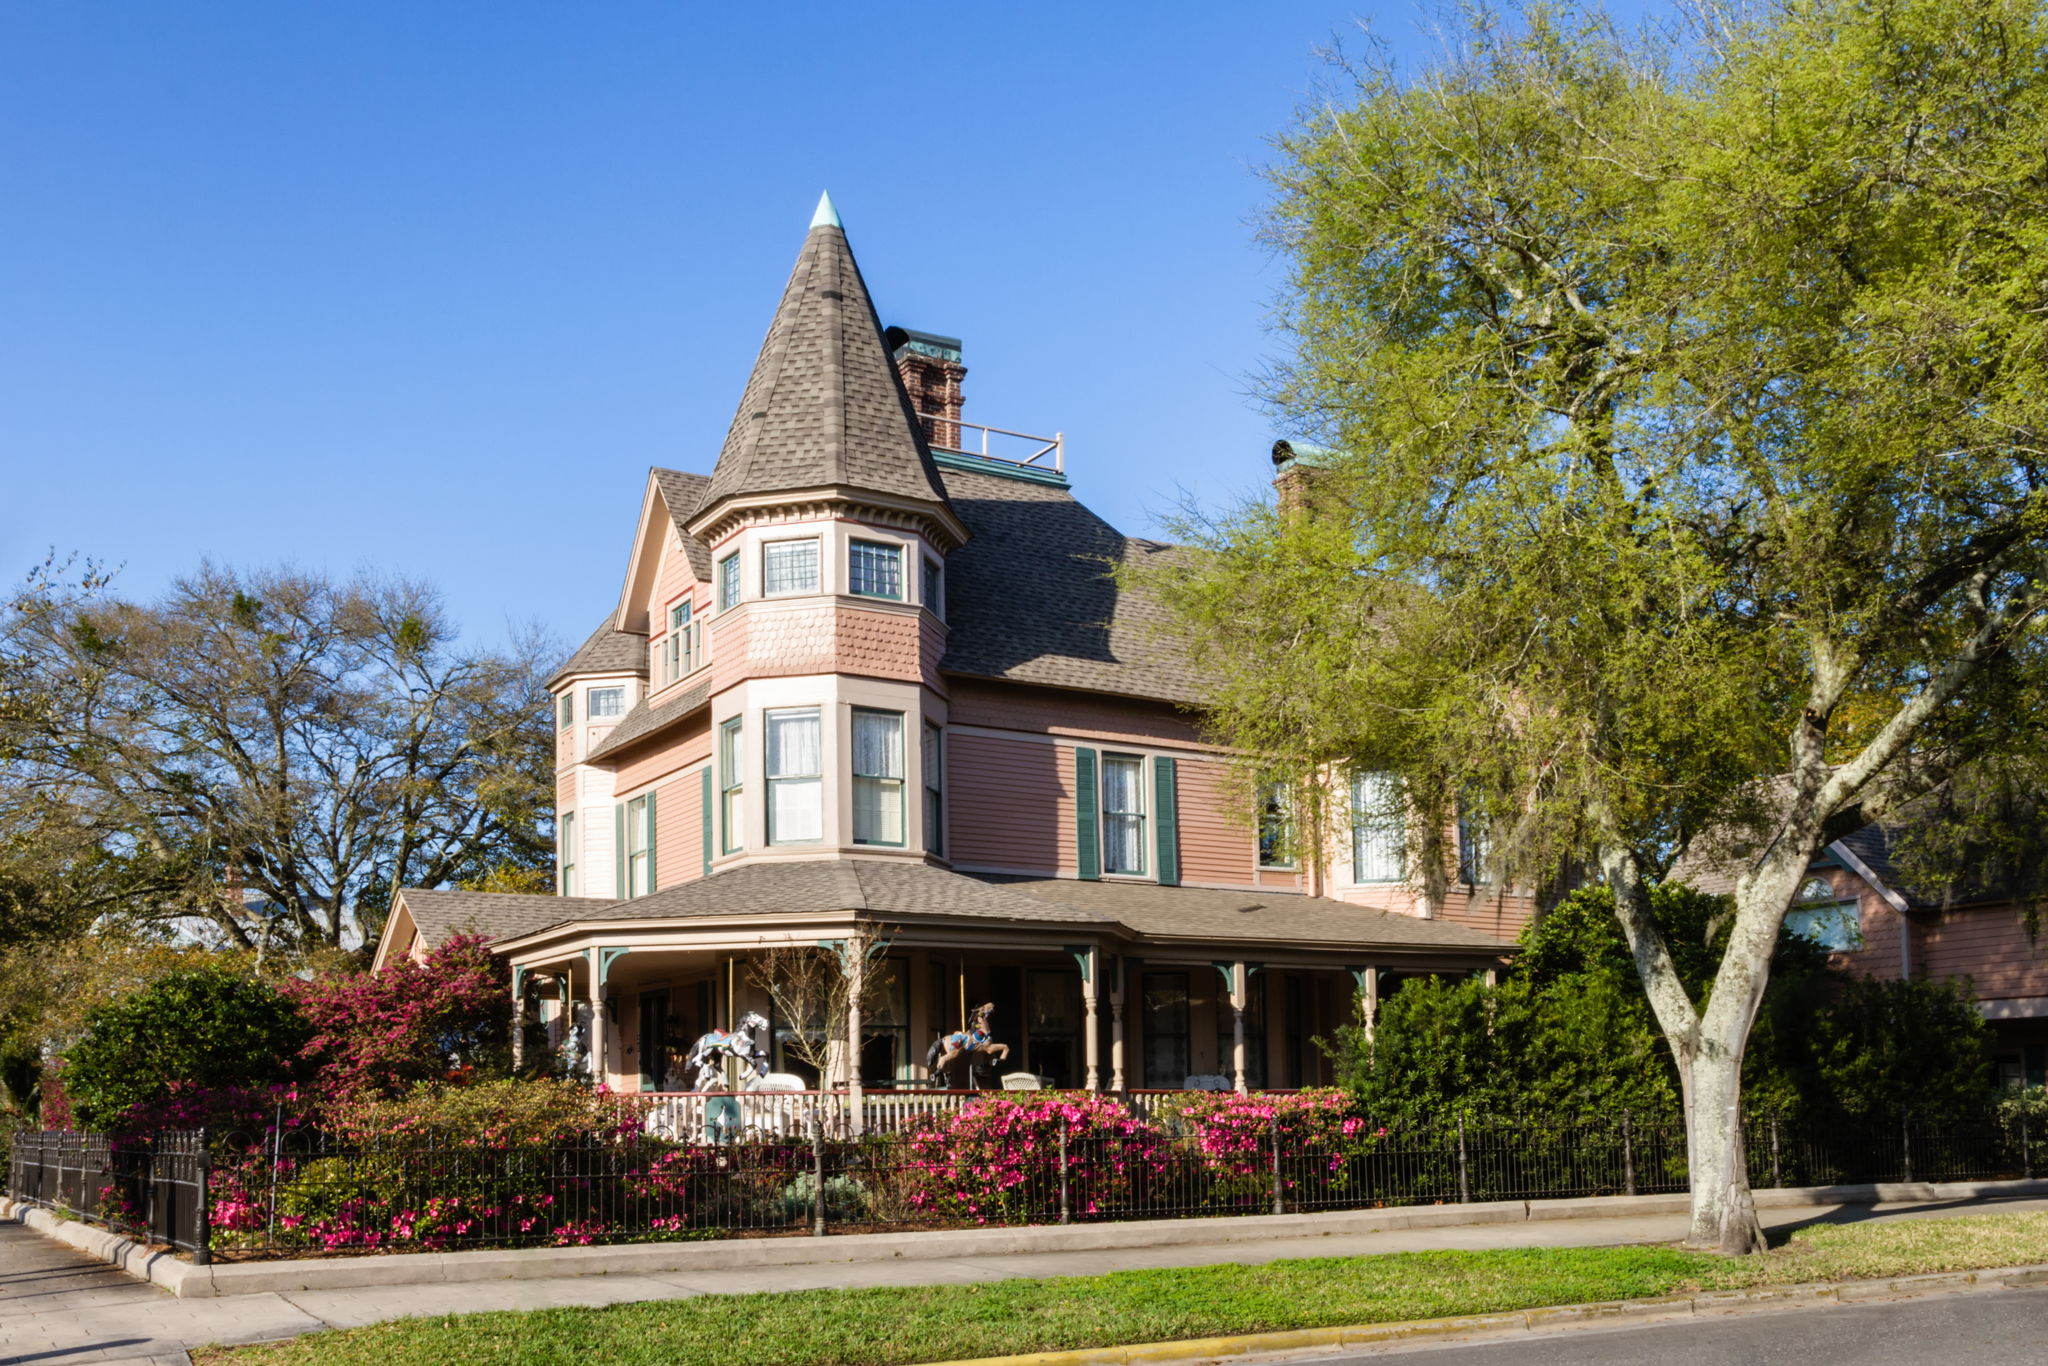 ..and explore the area's 50-plus blocks of beautiful historic homes